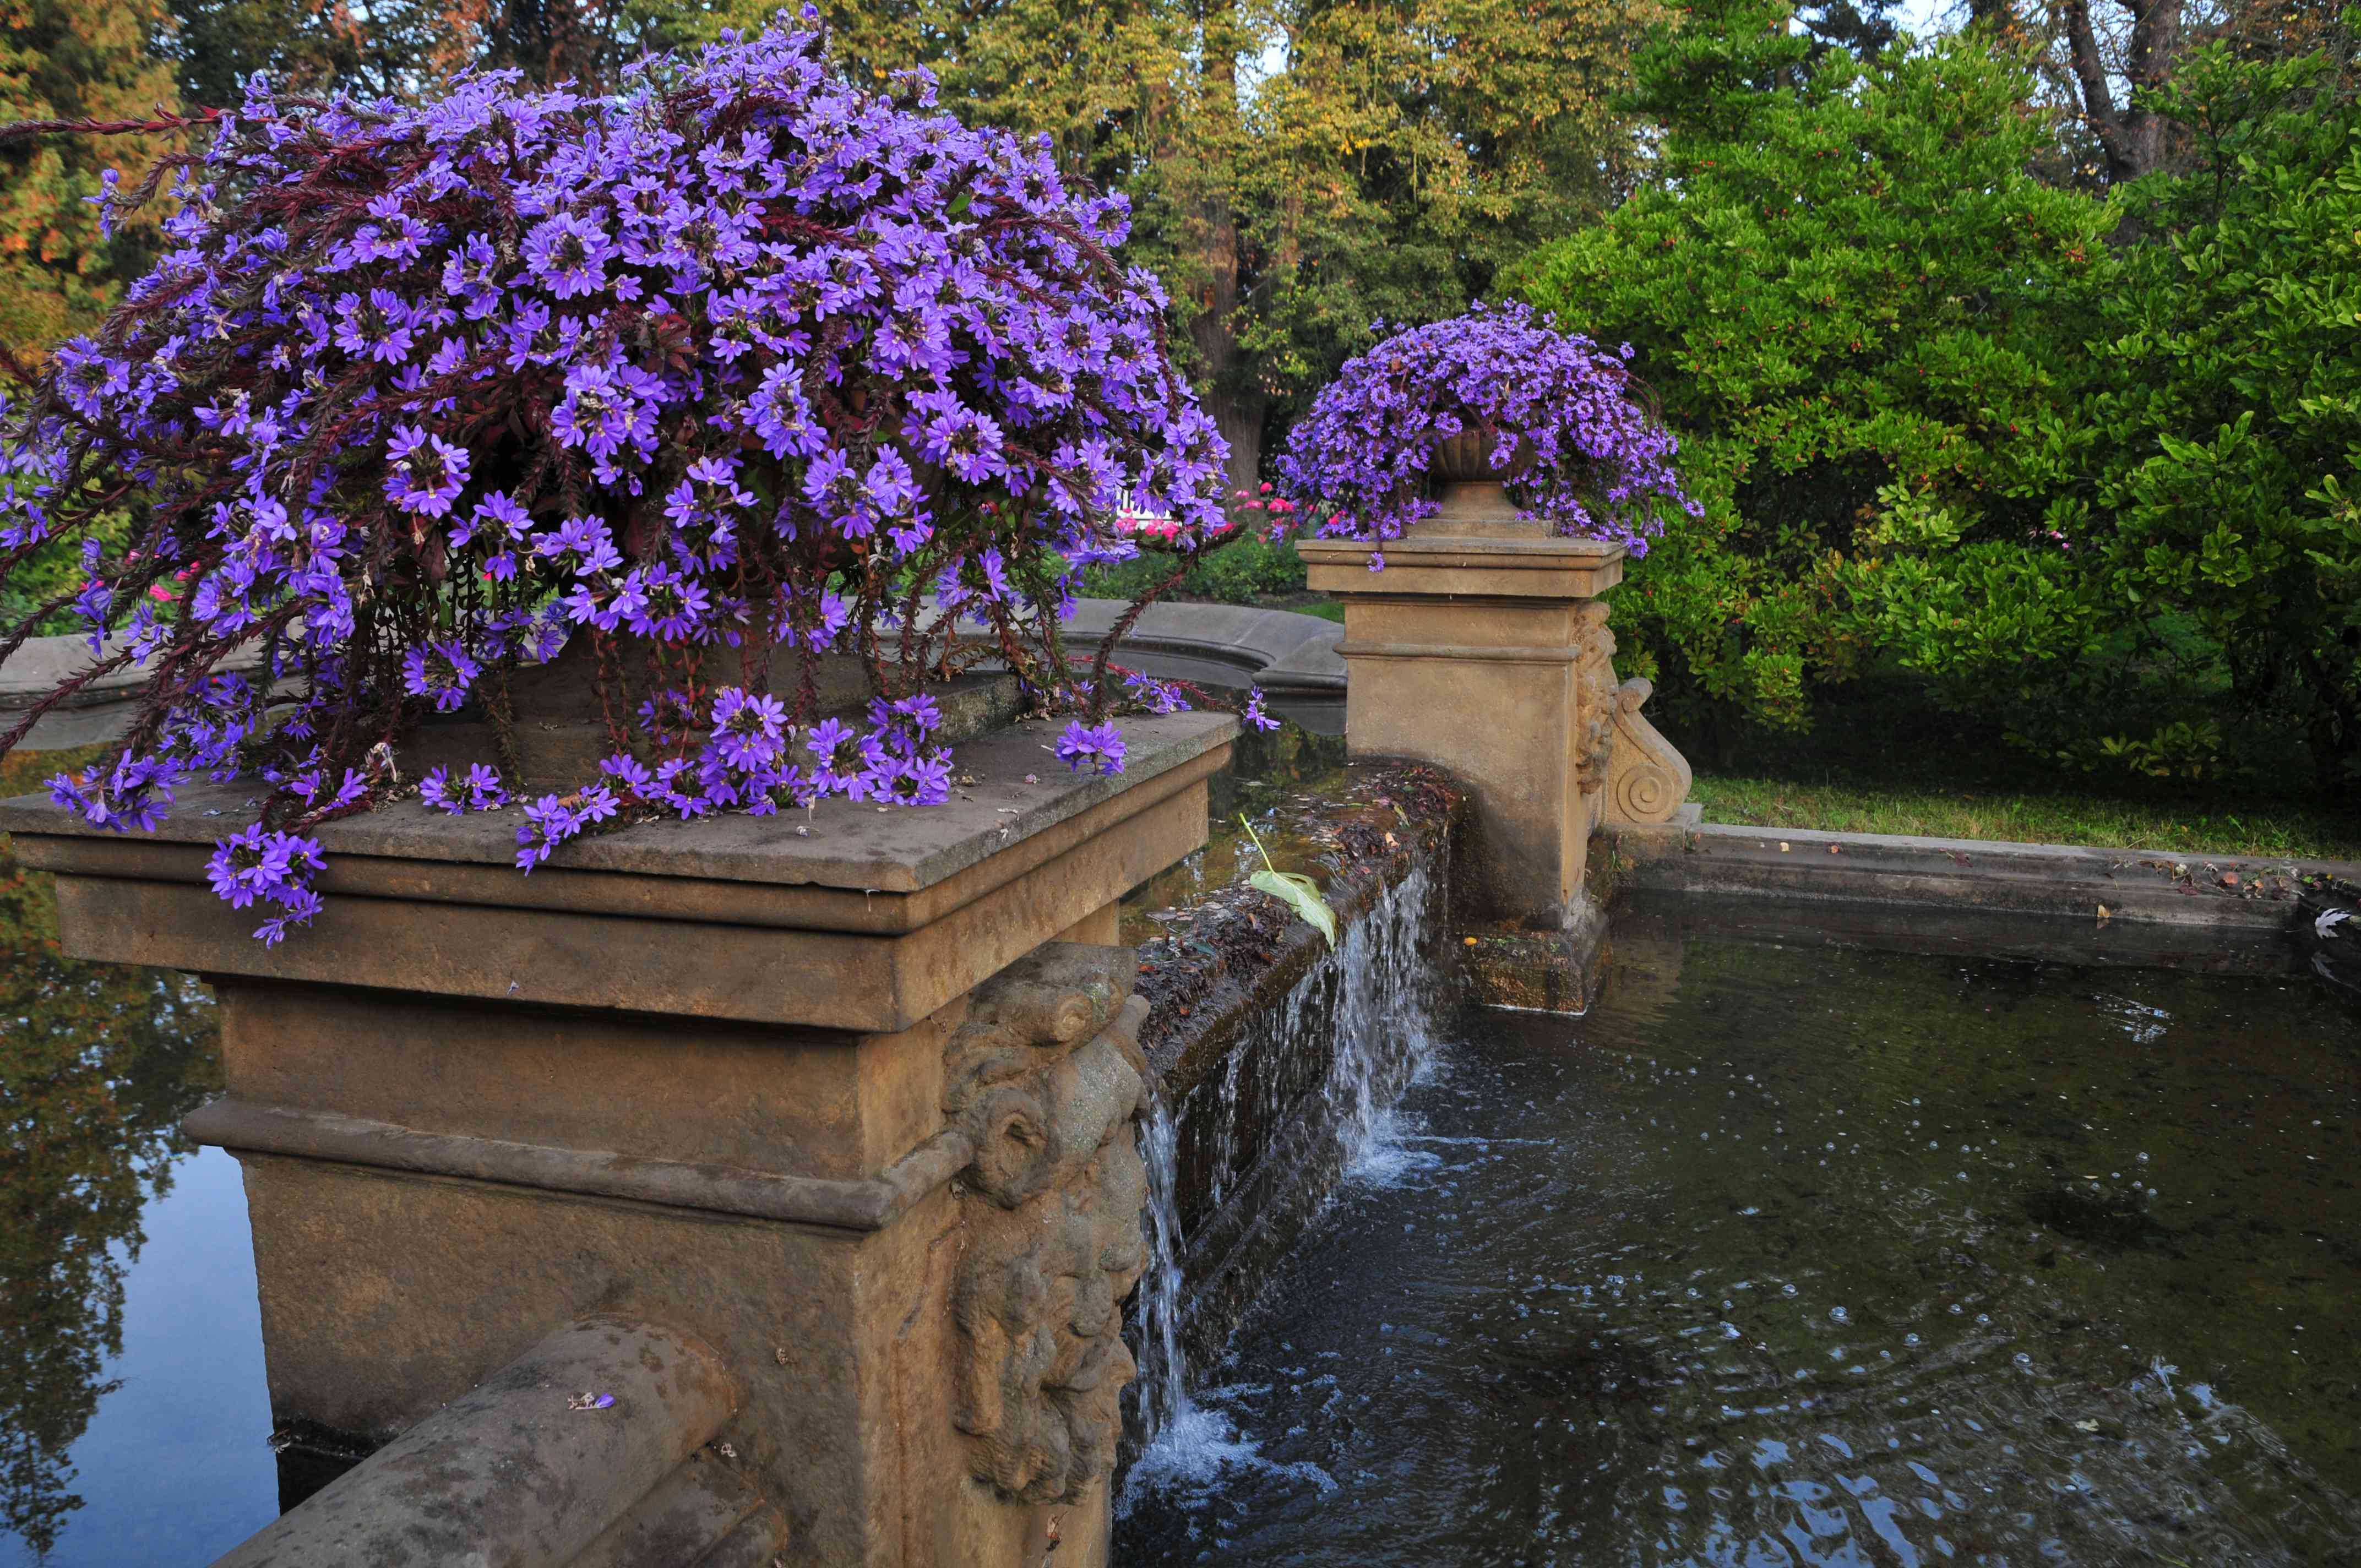 Scaevola plant with dark red bract stems and bright purple flowers in stone planter near fountain